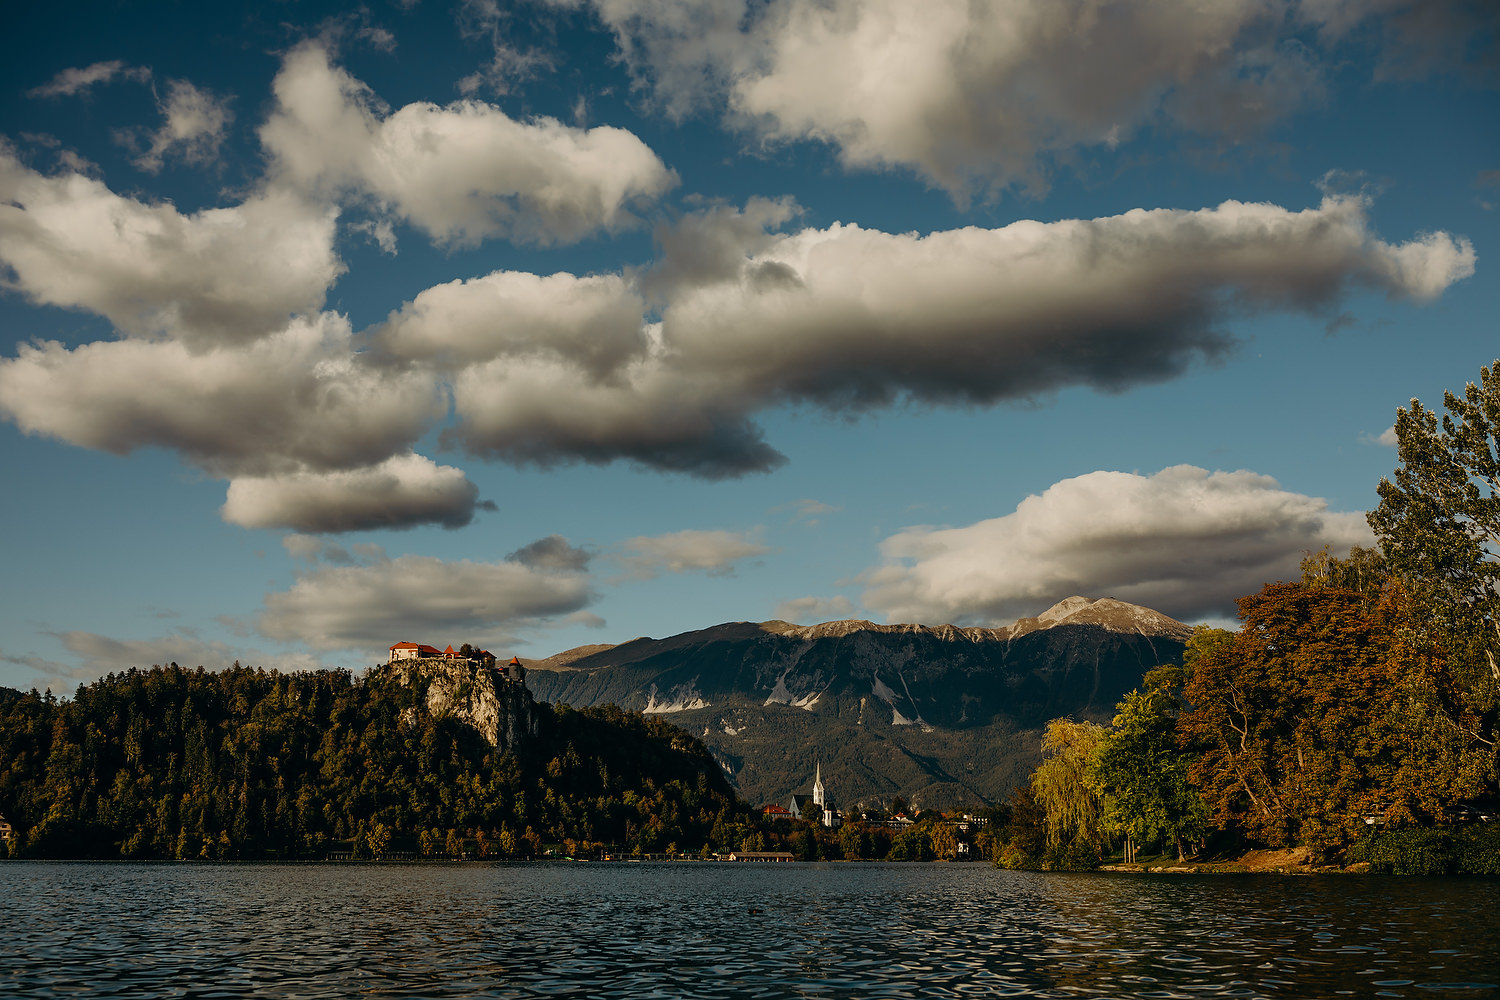 A dramatic view of Bled castle